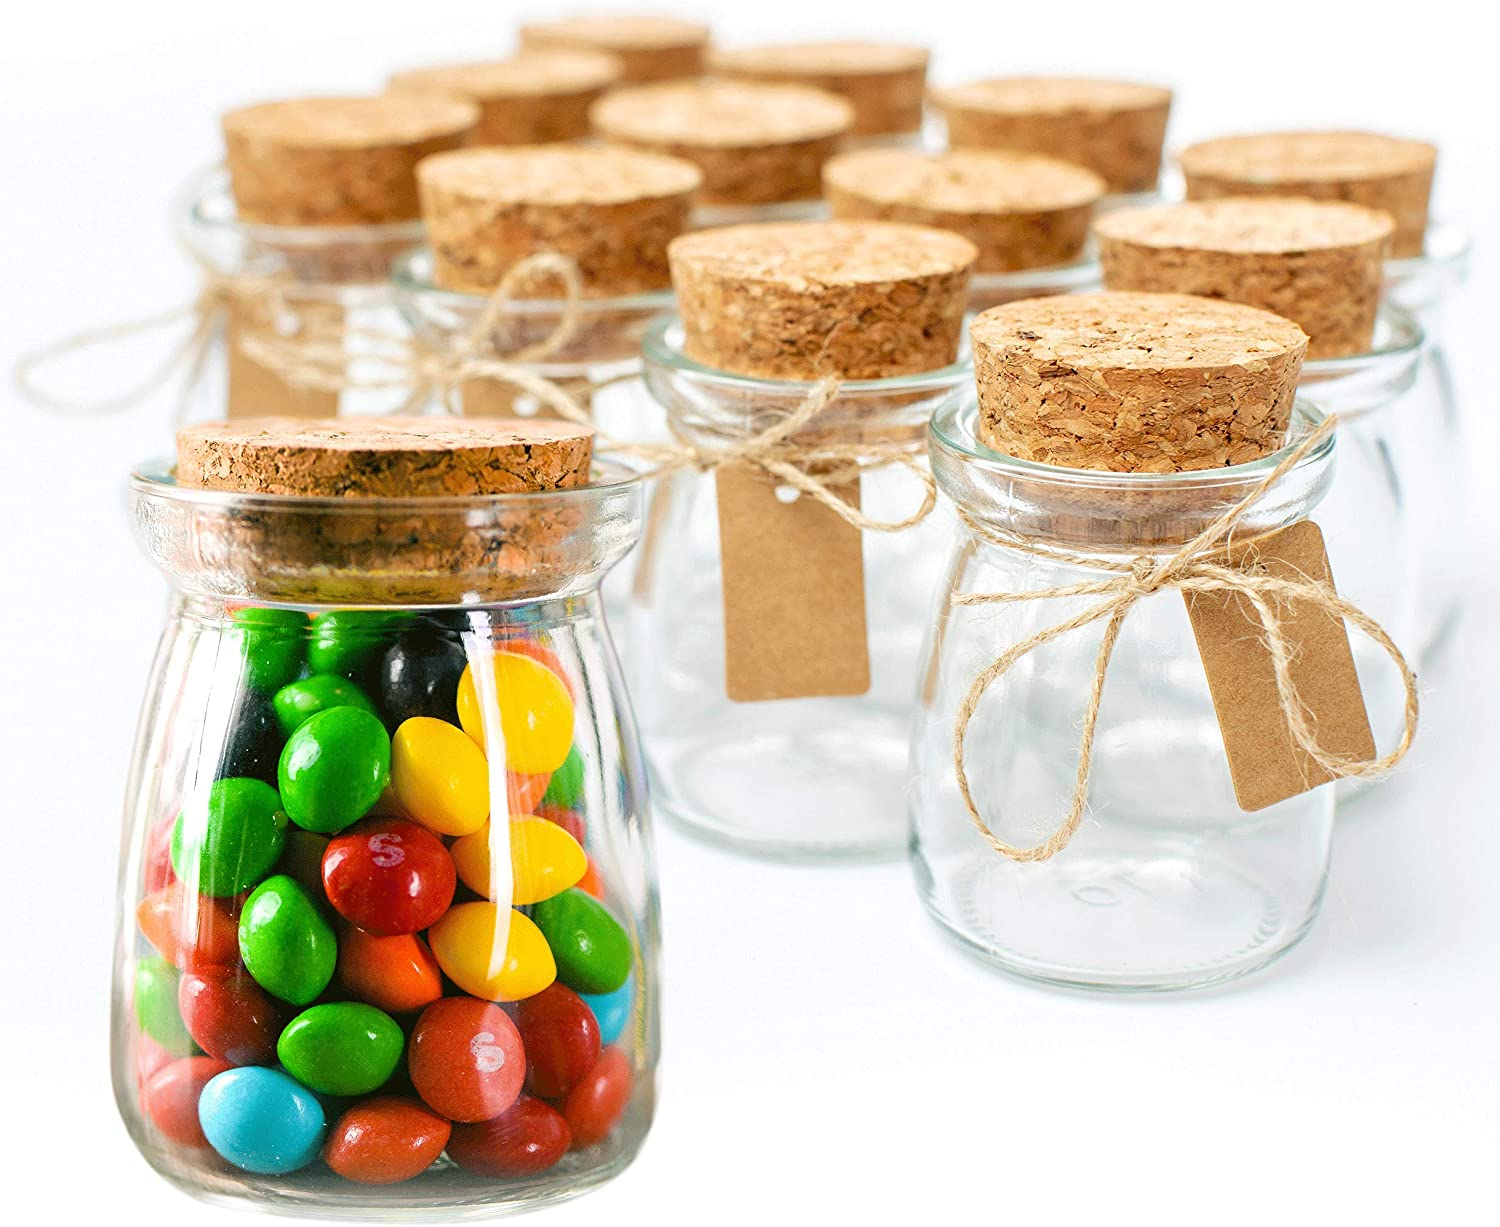 Otis Classic Small Glass Jars with Lids – Set of 20 Mini Honey Jars with  Corks for Wedding & Party Favors, Apothecary, DIY Crafts, Candy, Pudding &  ...